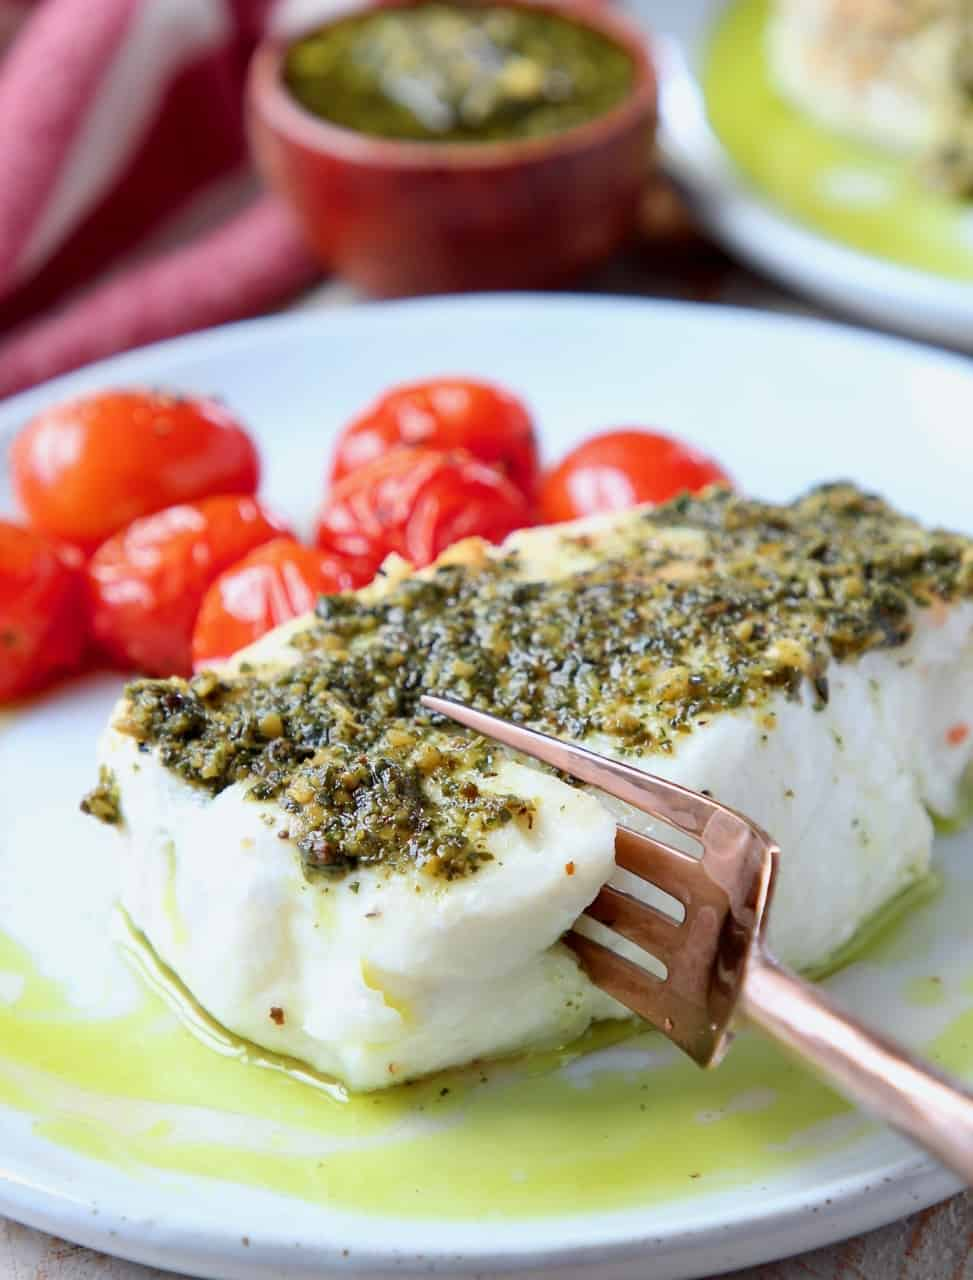 Fork cutting into sea bass on plate, topped with pesto